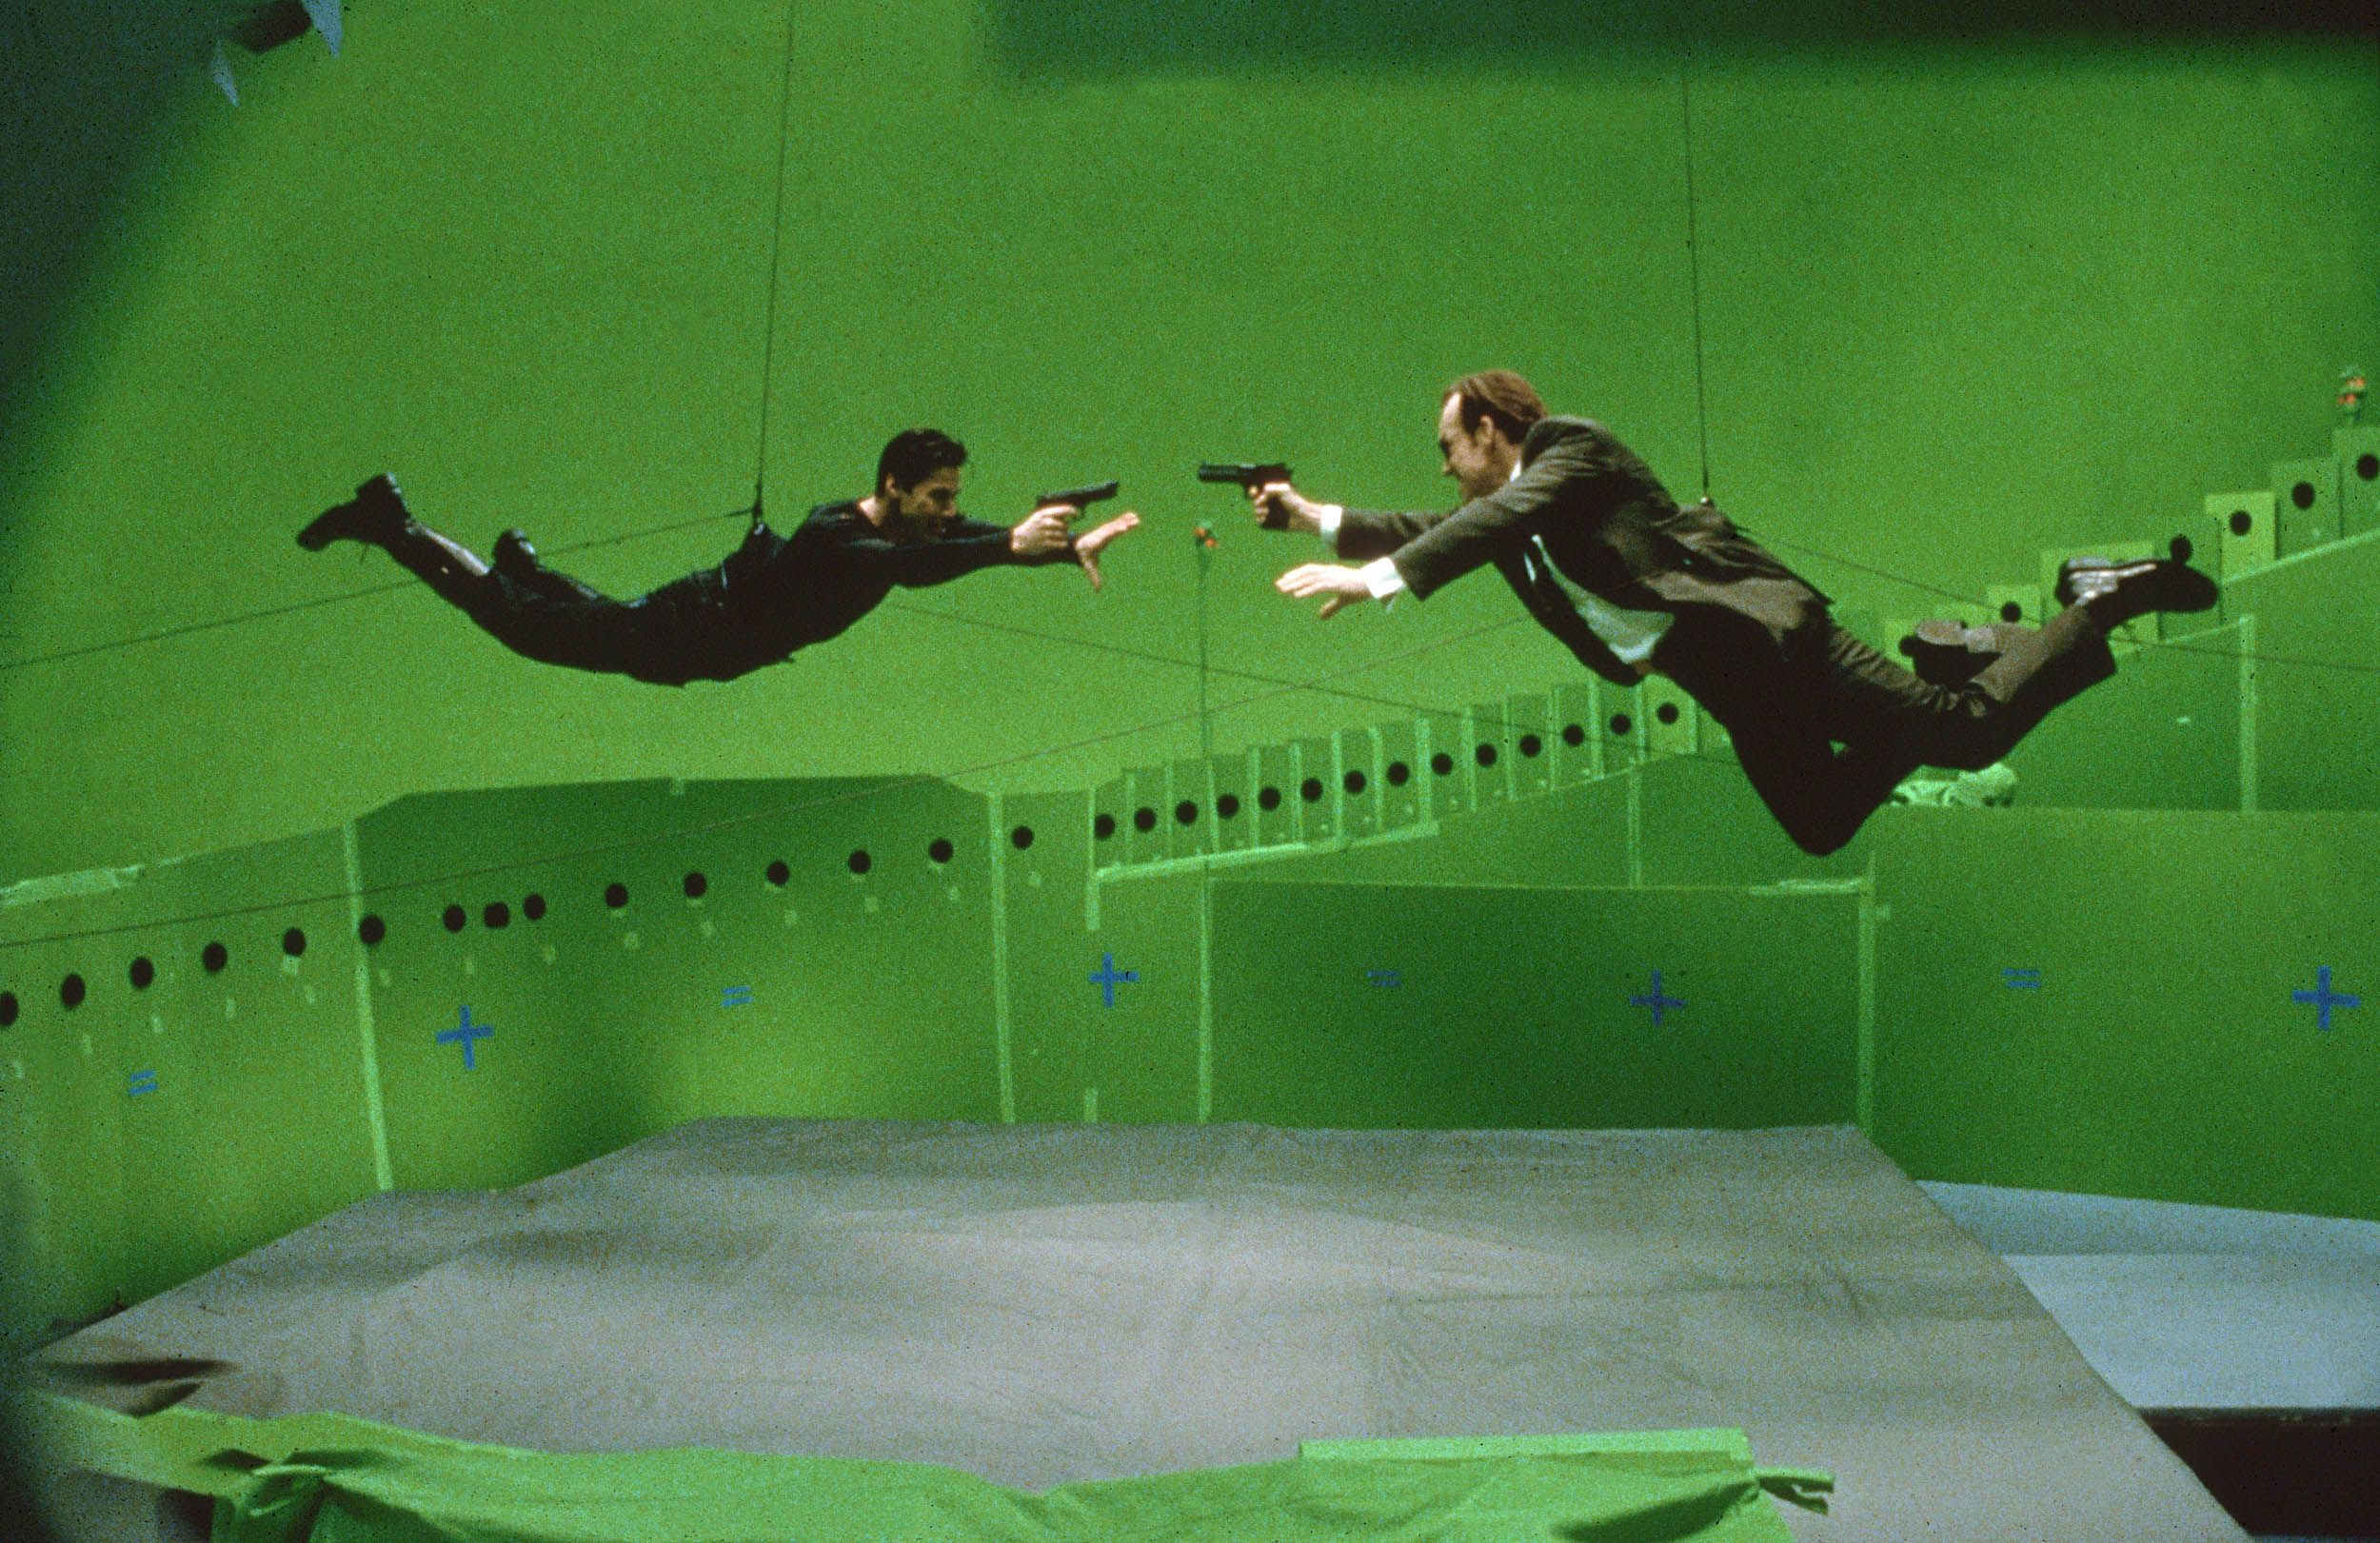 Keanu Reeves and Hugo Weaving filming in front of a green screen for the 1999 film The Matrix.